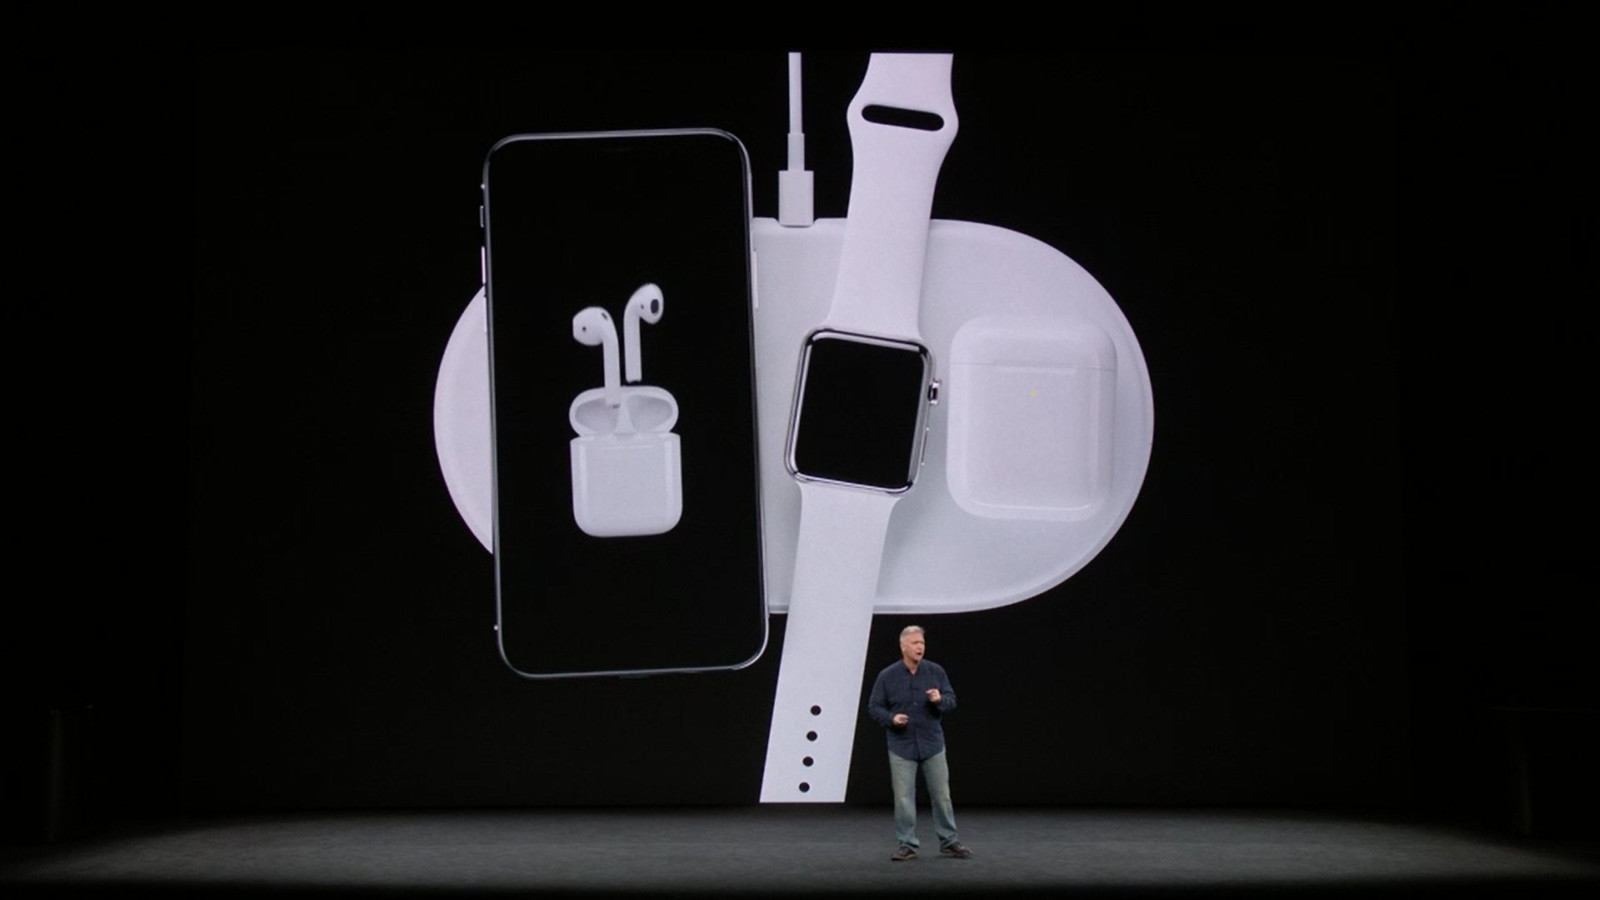 Apple AirPower charger will reportedly ship in September after bug fixes